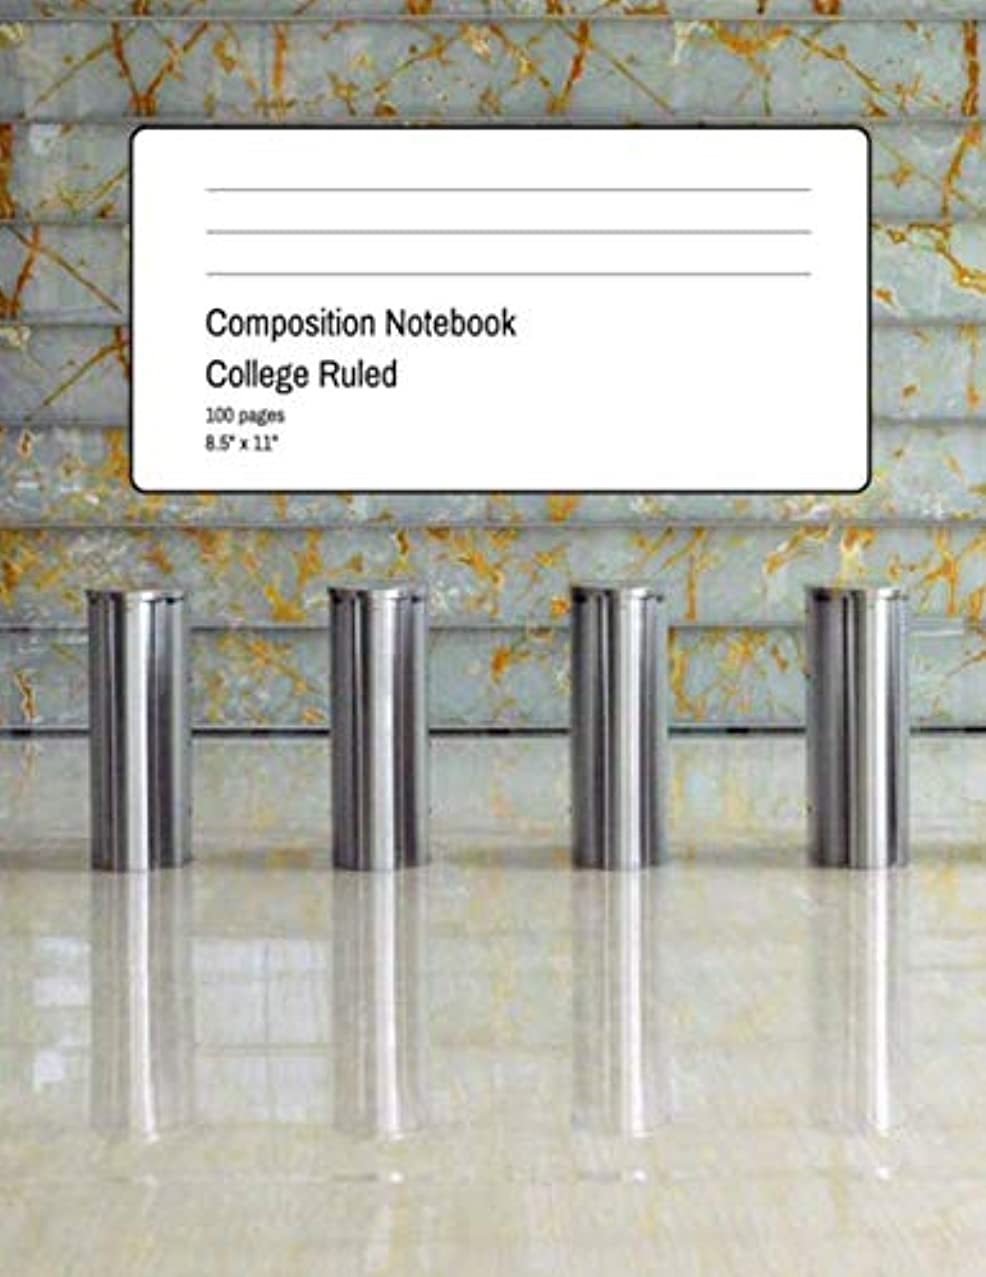 Composition Notebook College Ruled: 100 Pages + 8.5